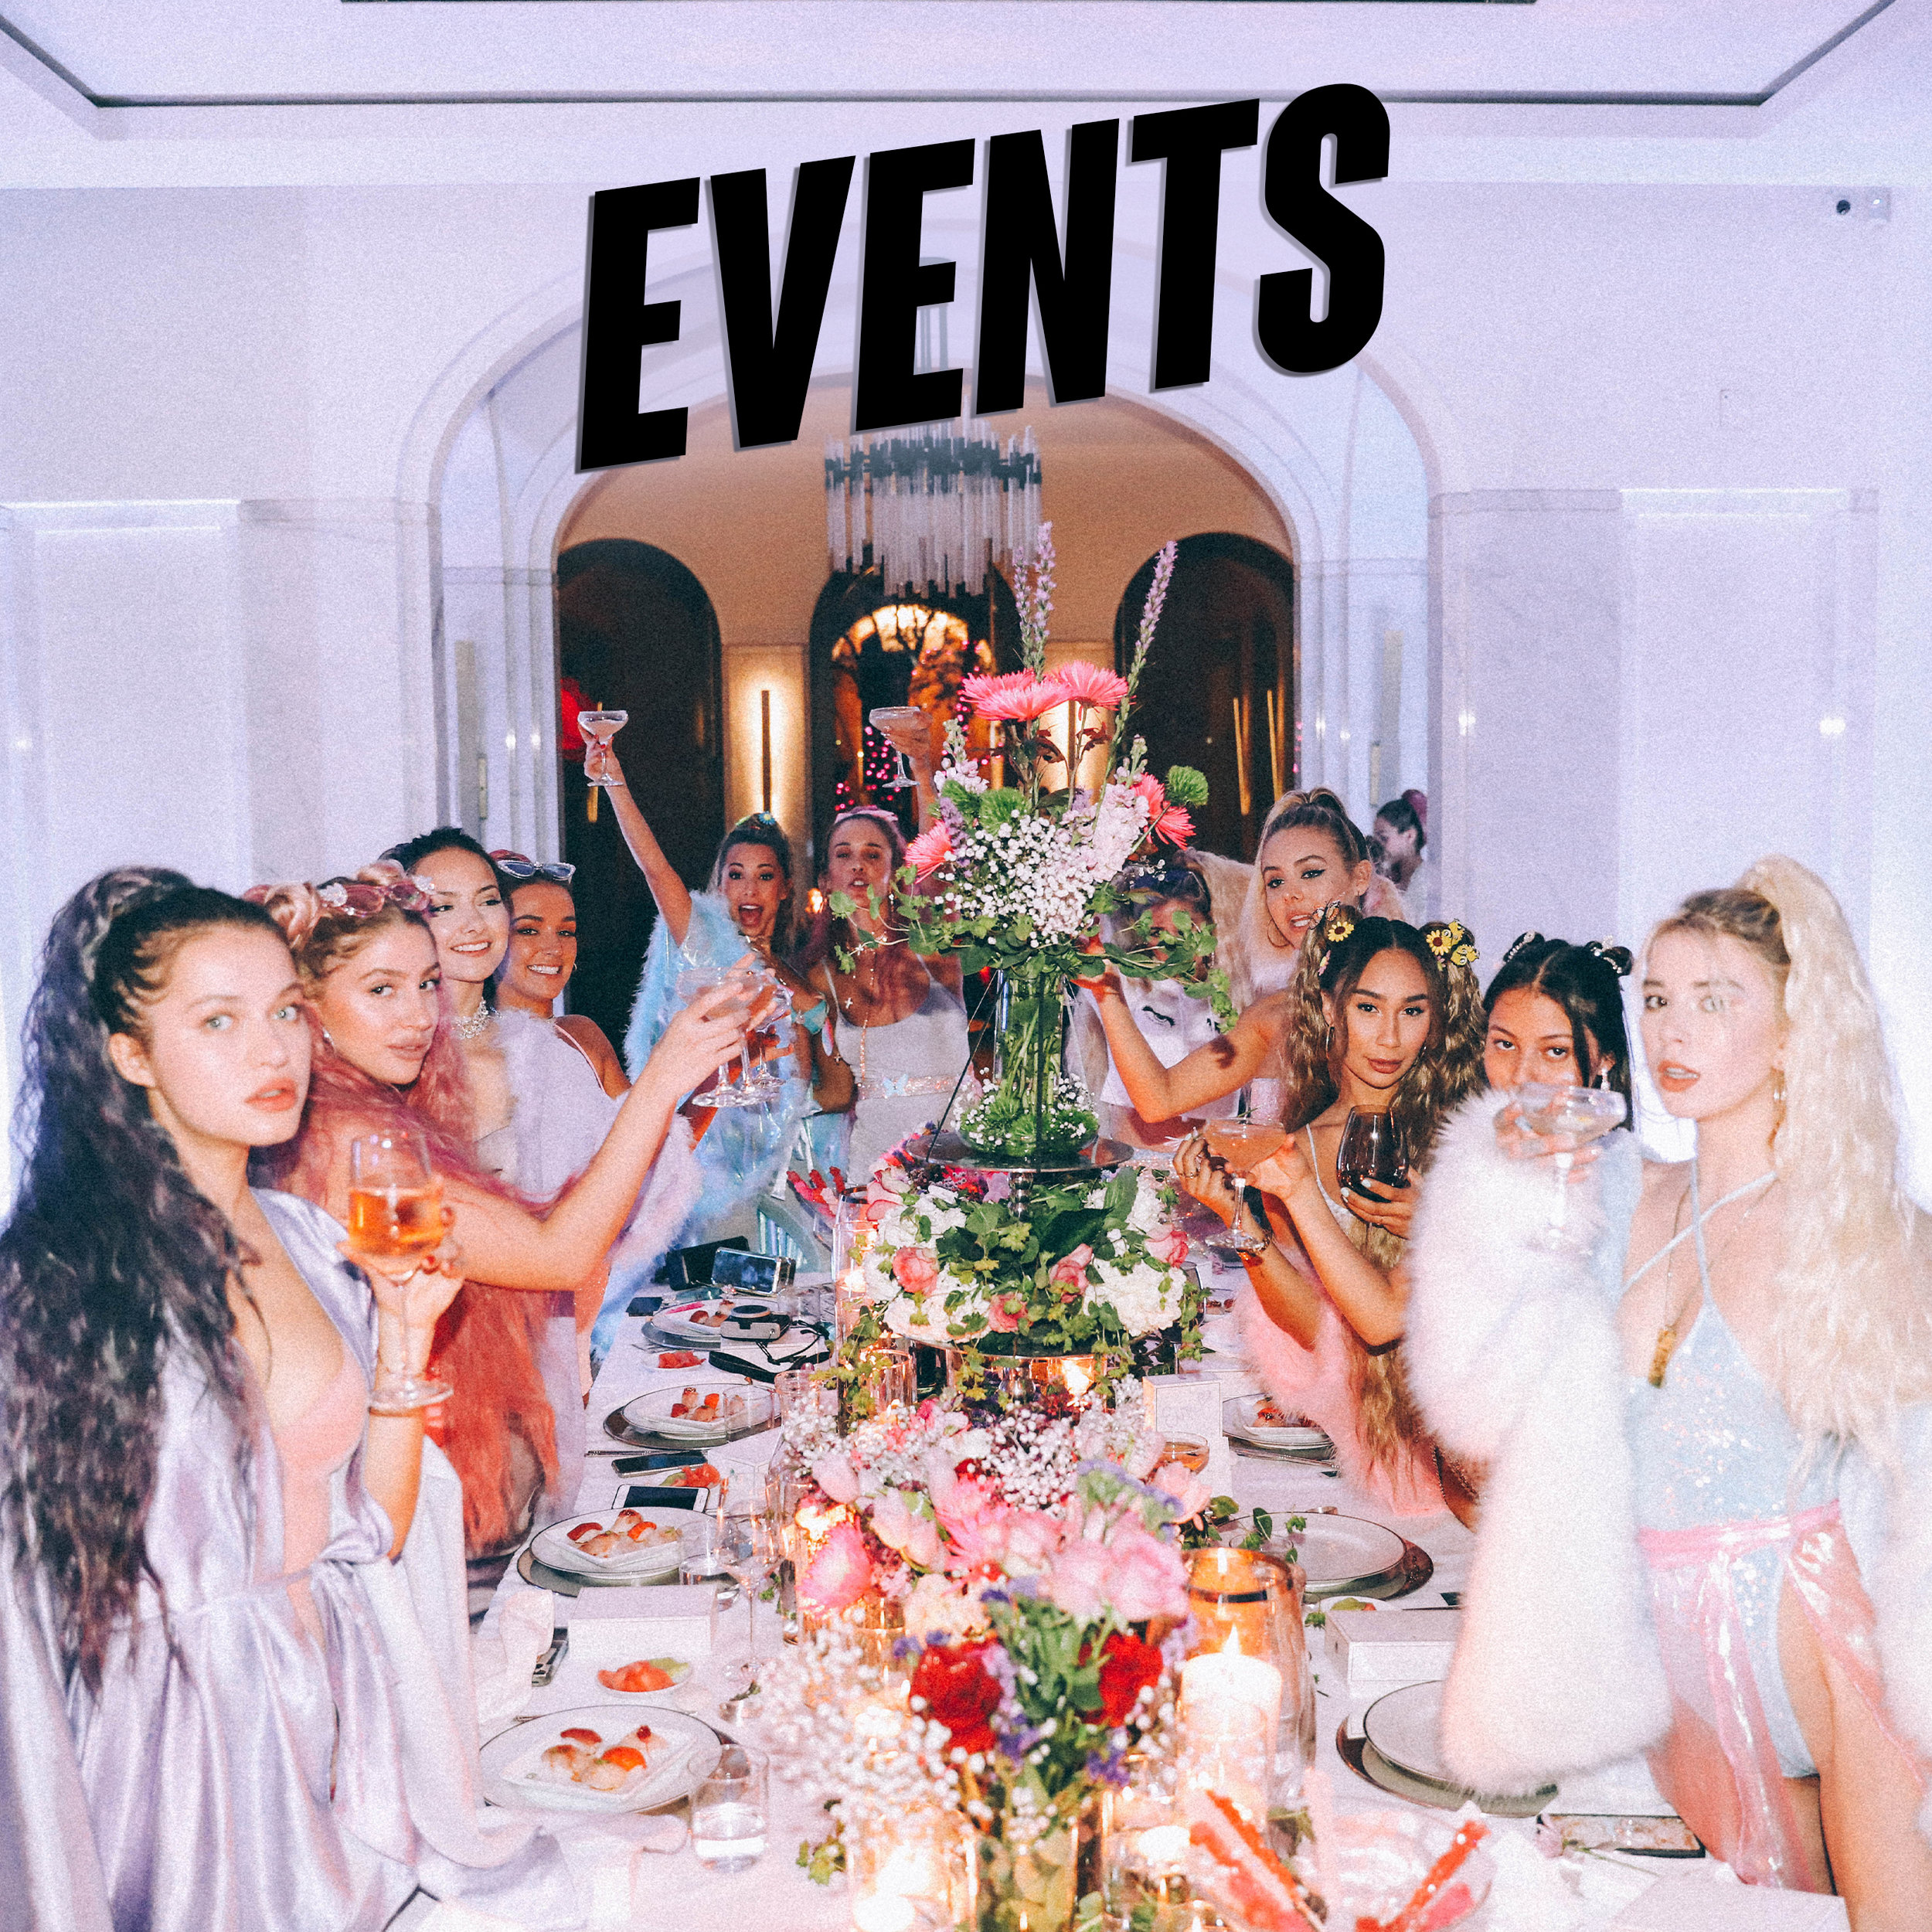 Our events are always known as status symbols for all who attend. The reason for this is clear: we emphasize originality and memorability. We leverage our unparalleled network of relationships within the entertainment, fashion and digital industries to enhance discoverability for our clients.